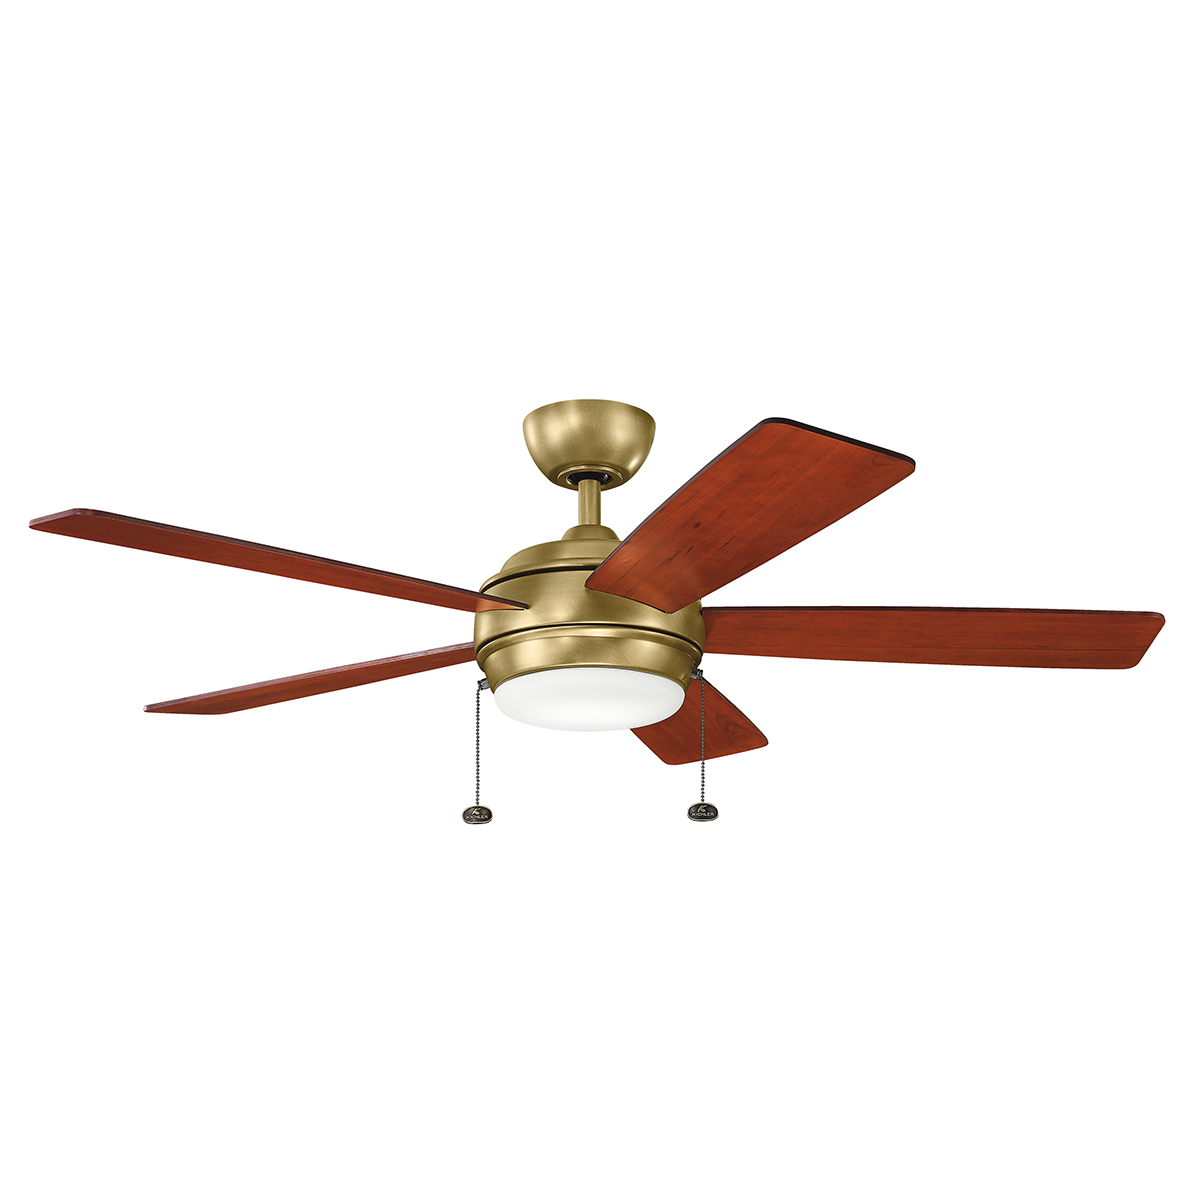 52 inchCeiling Fan from the Starkk collection by Kichler 330174NBR